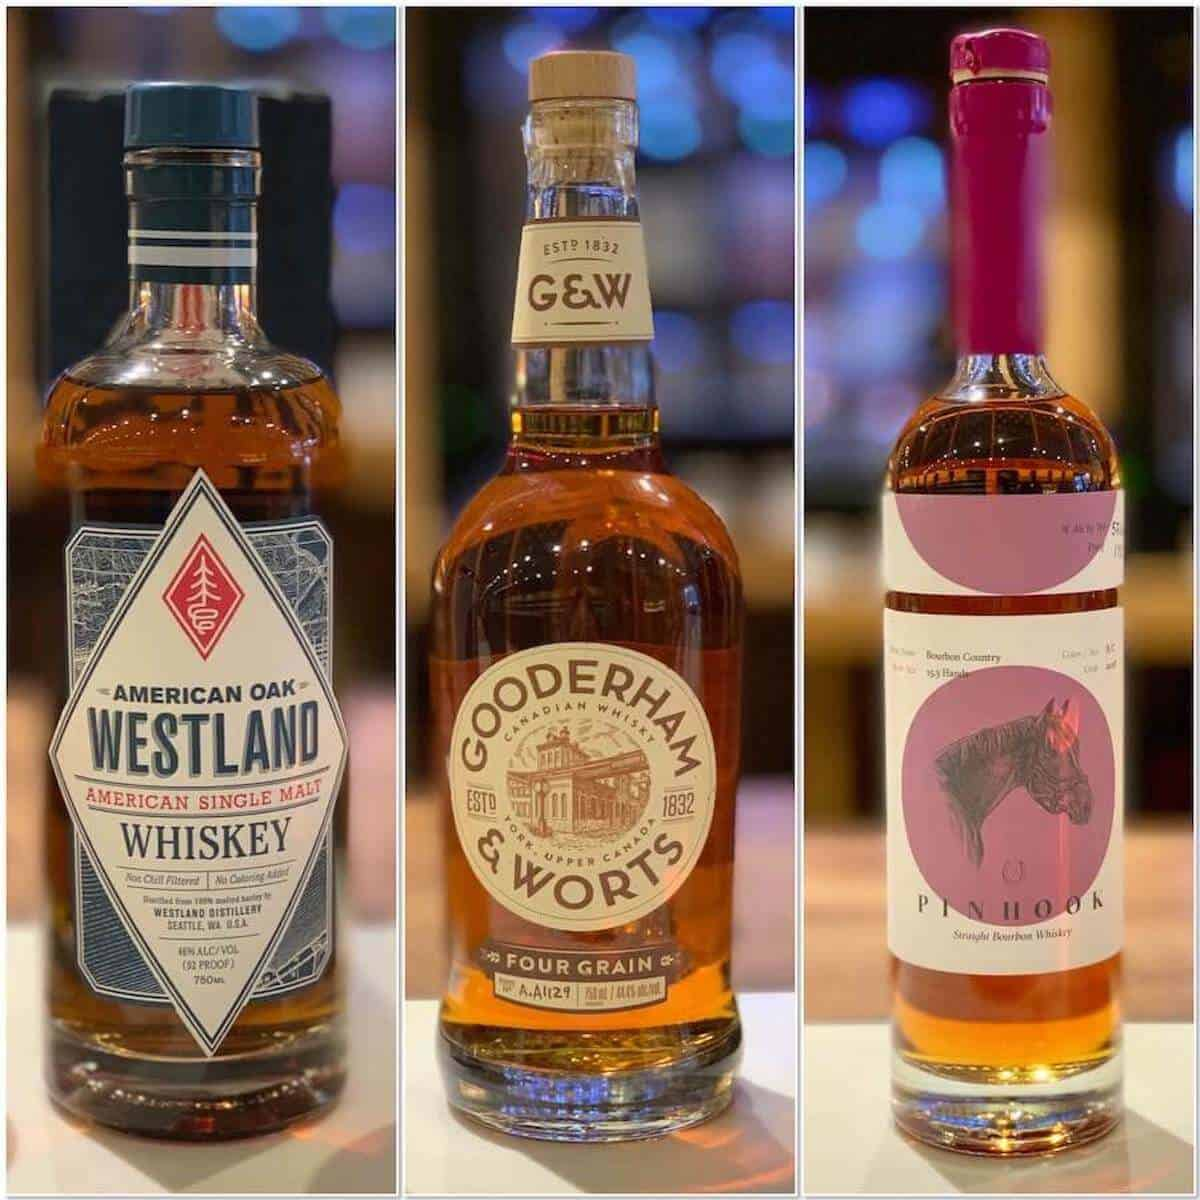 Collage of Westland, Gooderham & Wort, and Pinhook whiskey bottles on a counter.